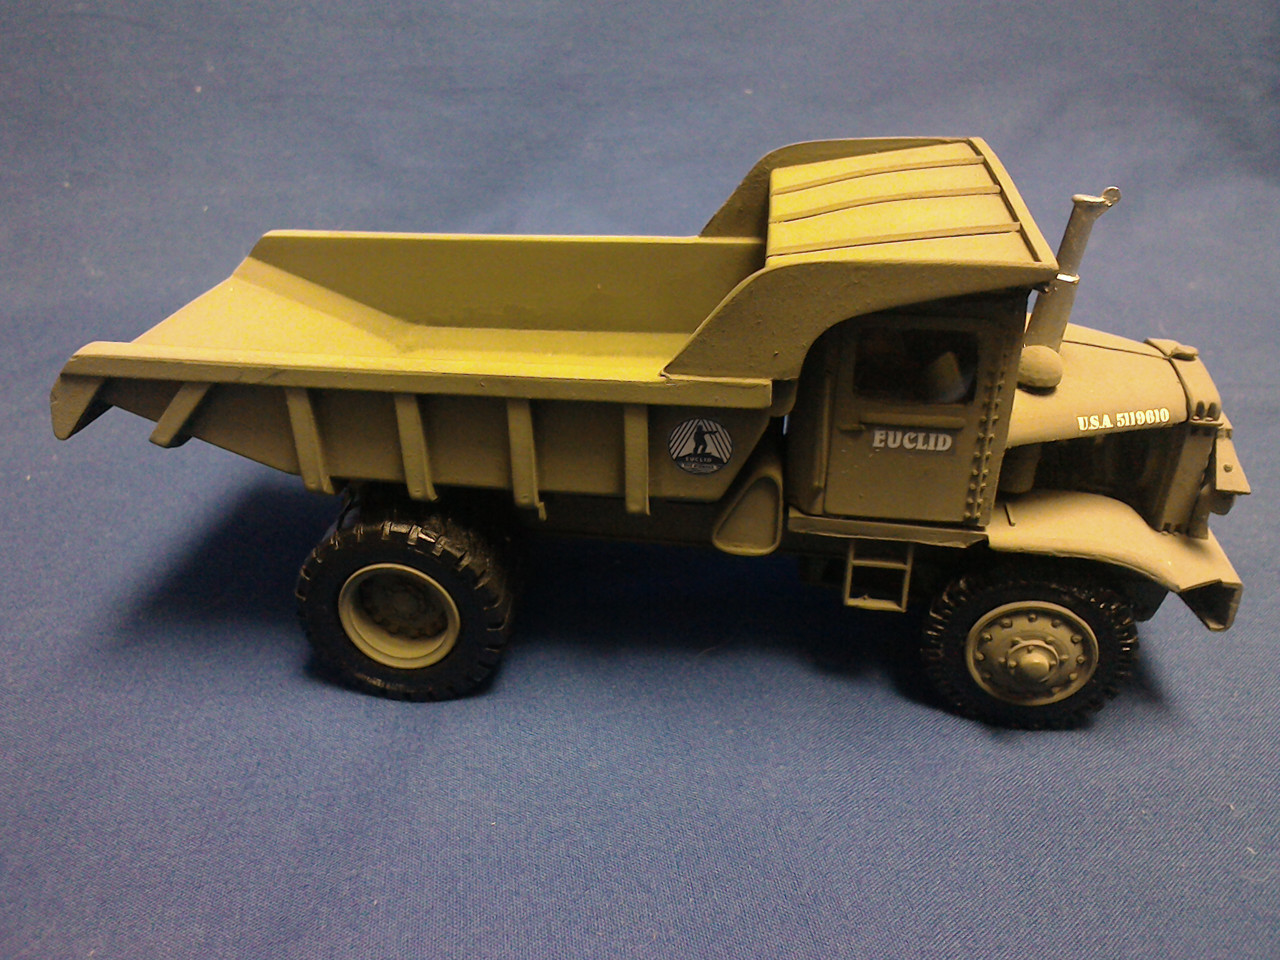 Picture of Euclid R-15 dump   early olive drab color